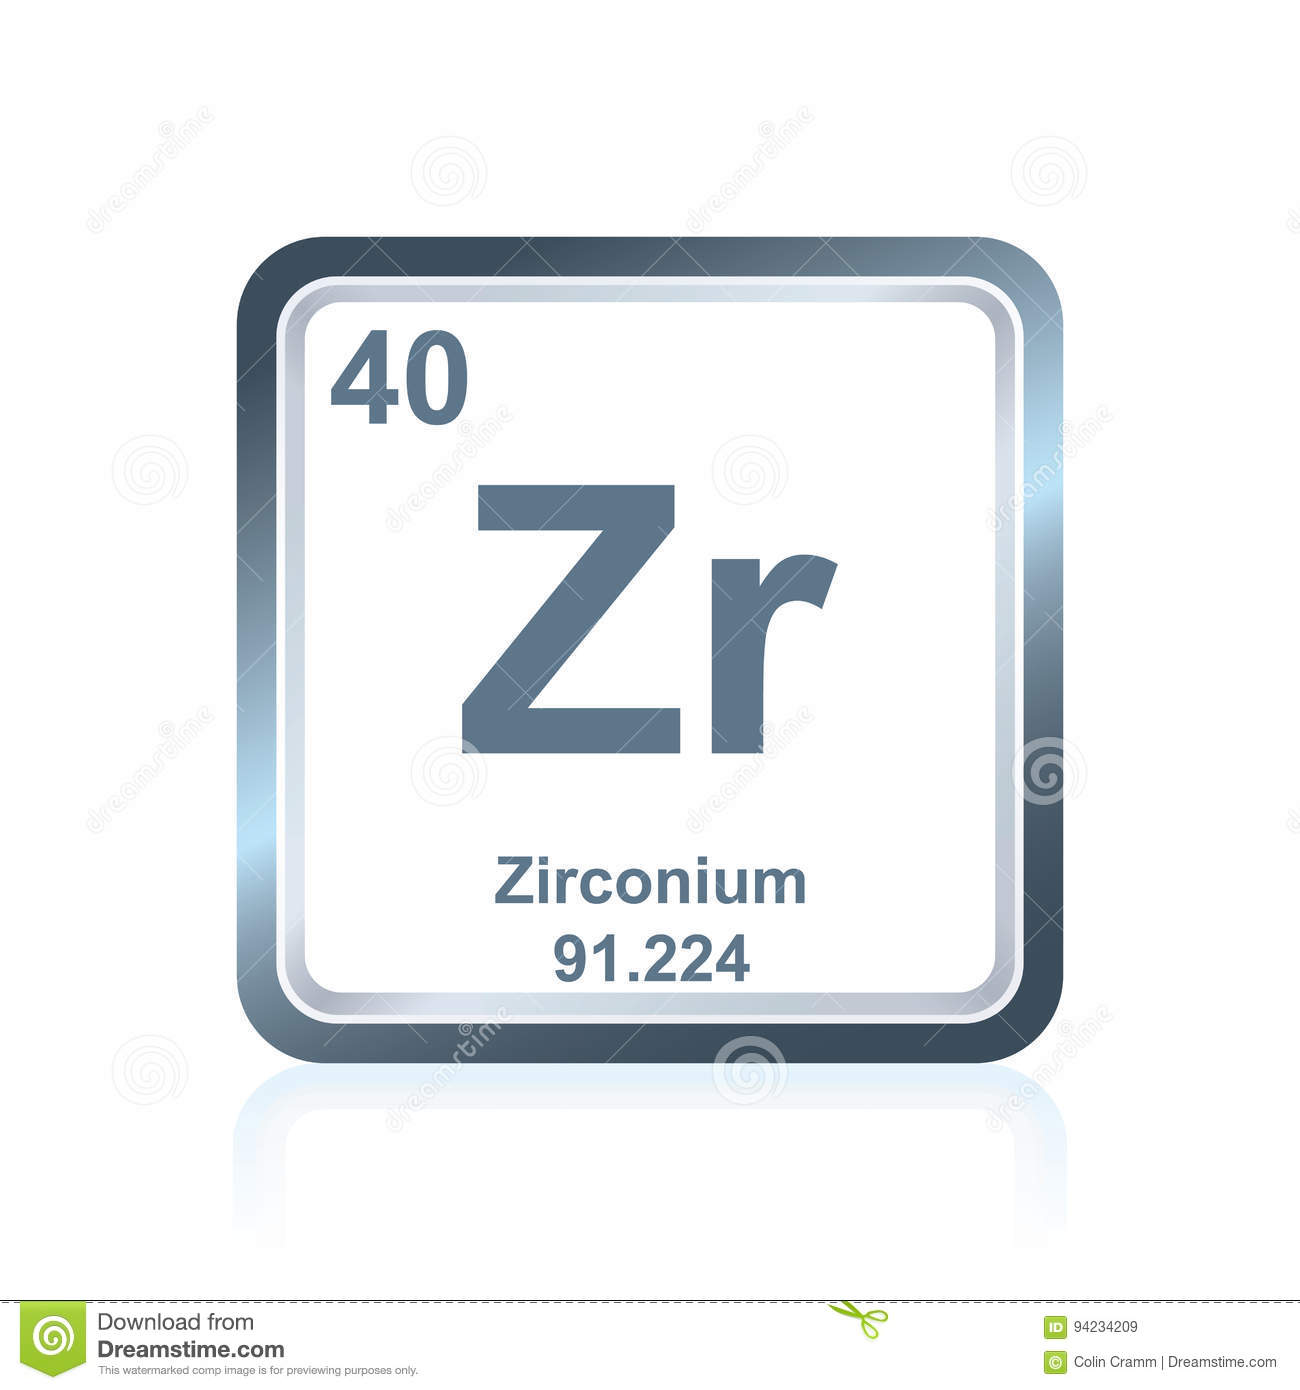 Periodic table element zirconium icon stock illustration chemical element zirconium from the periodic table royalty free stock images urtaz Choice Image